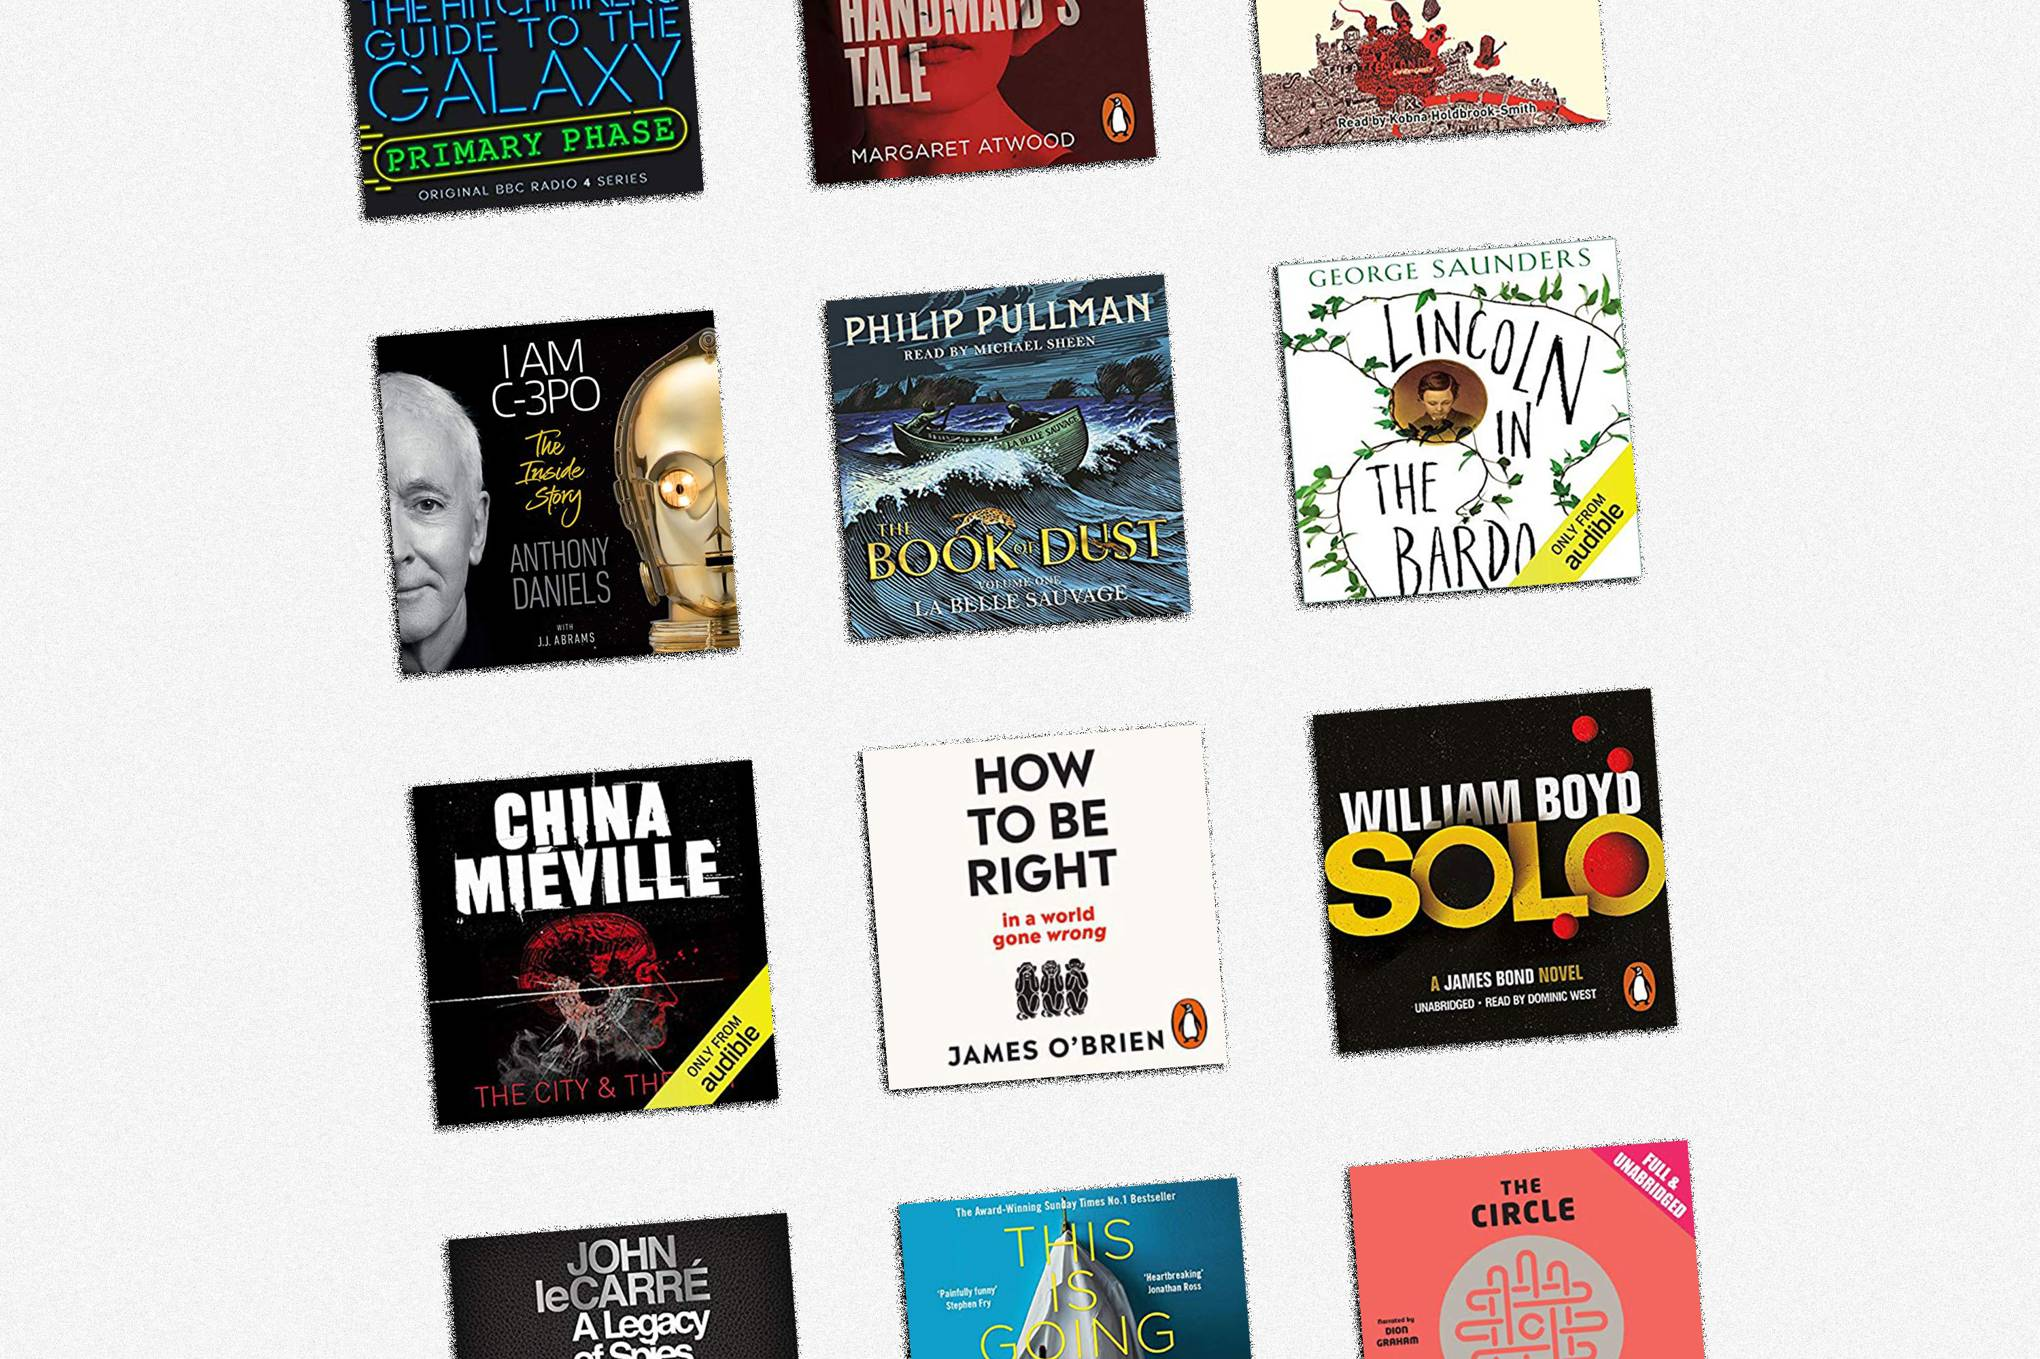 Audible Account Sharing 16 of the best audiobooks in 2019, fiction and non-fiction